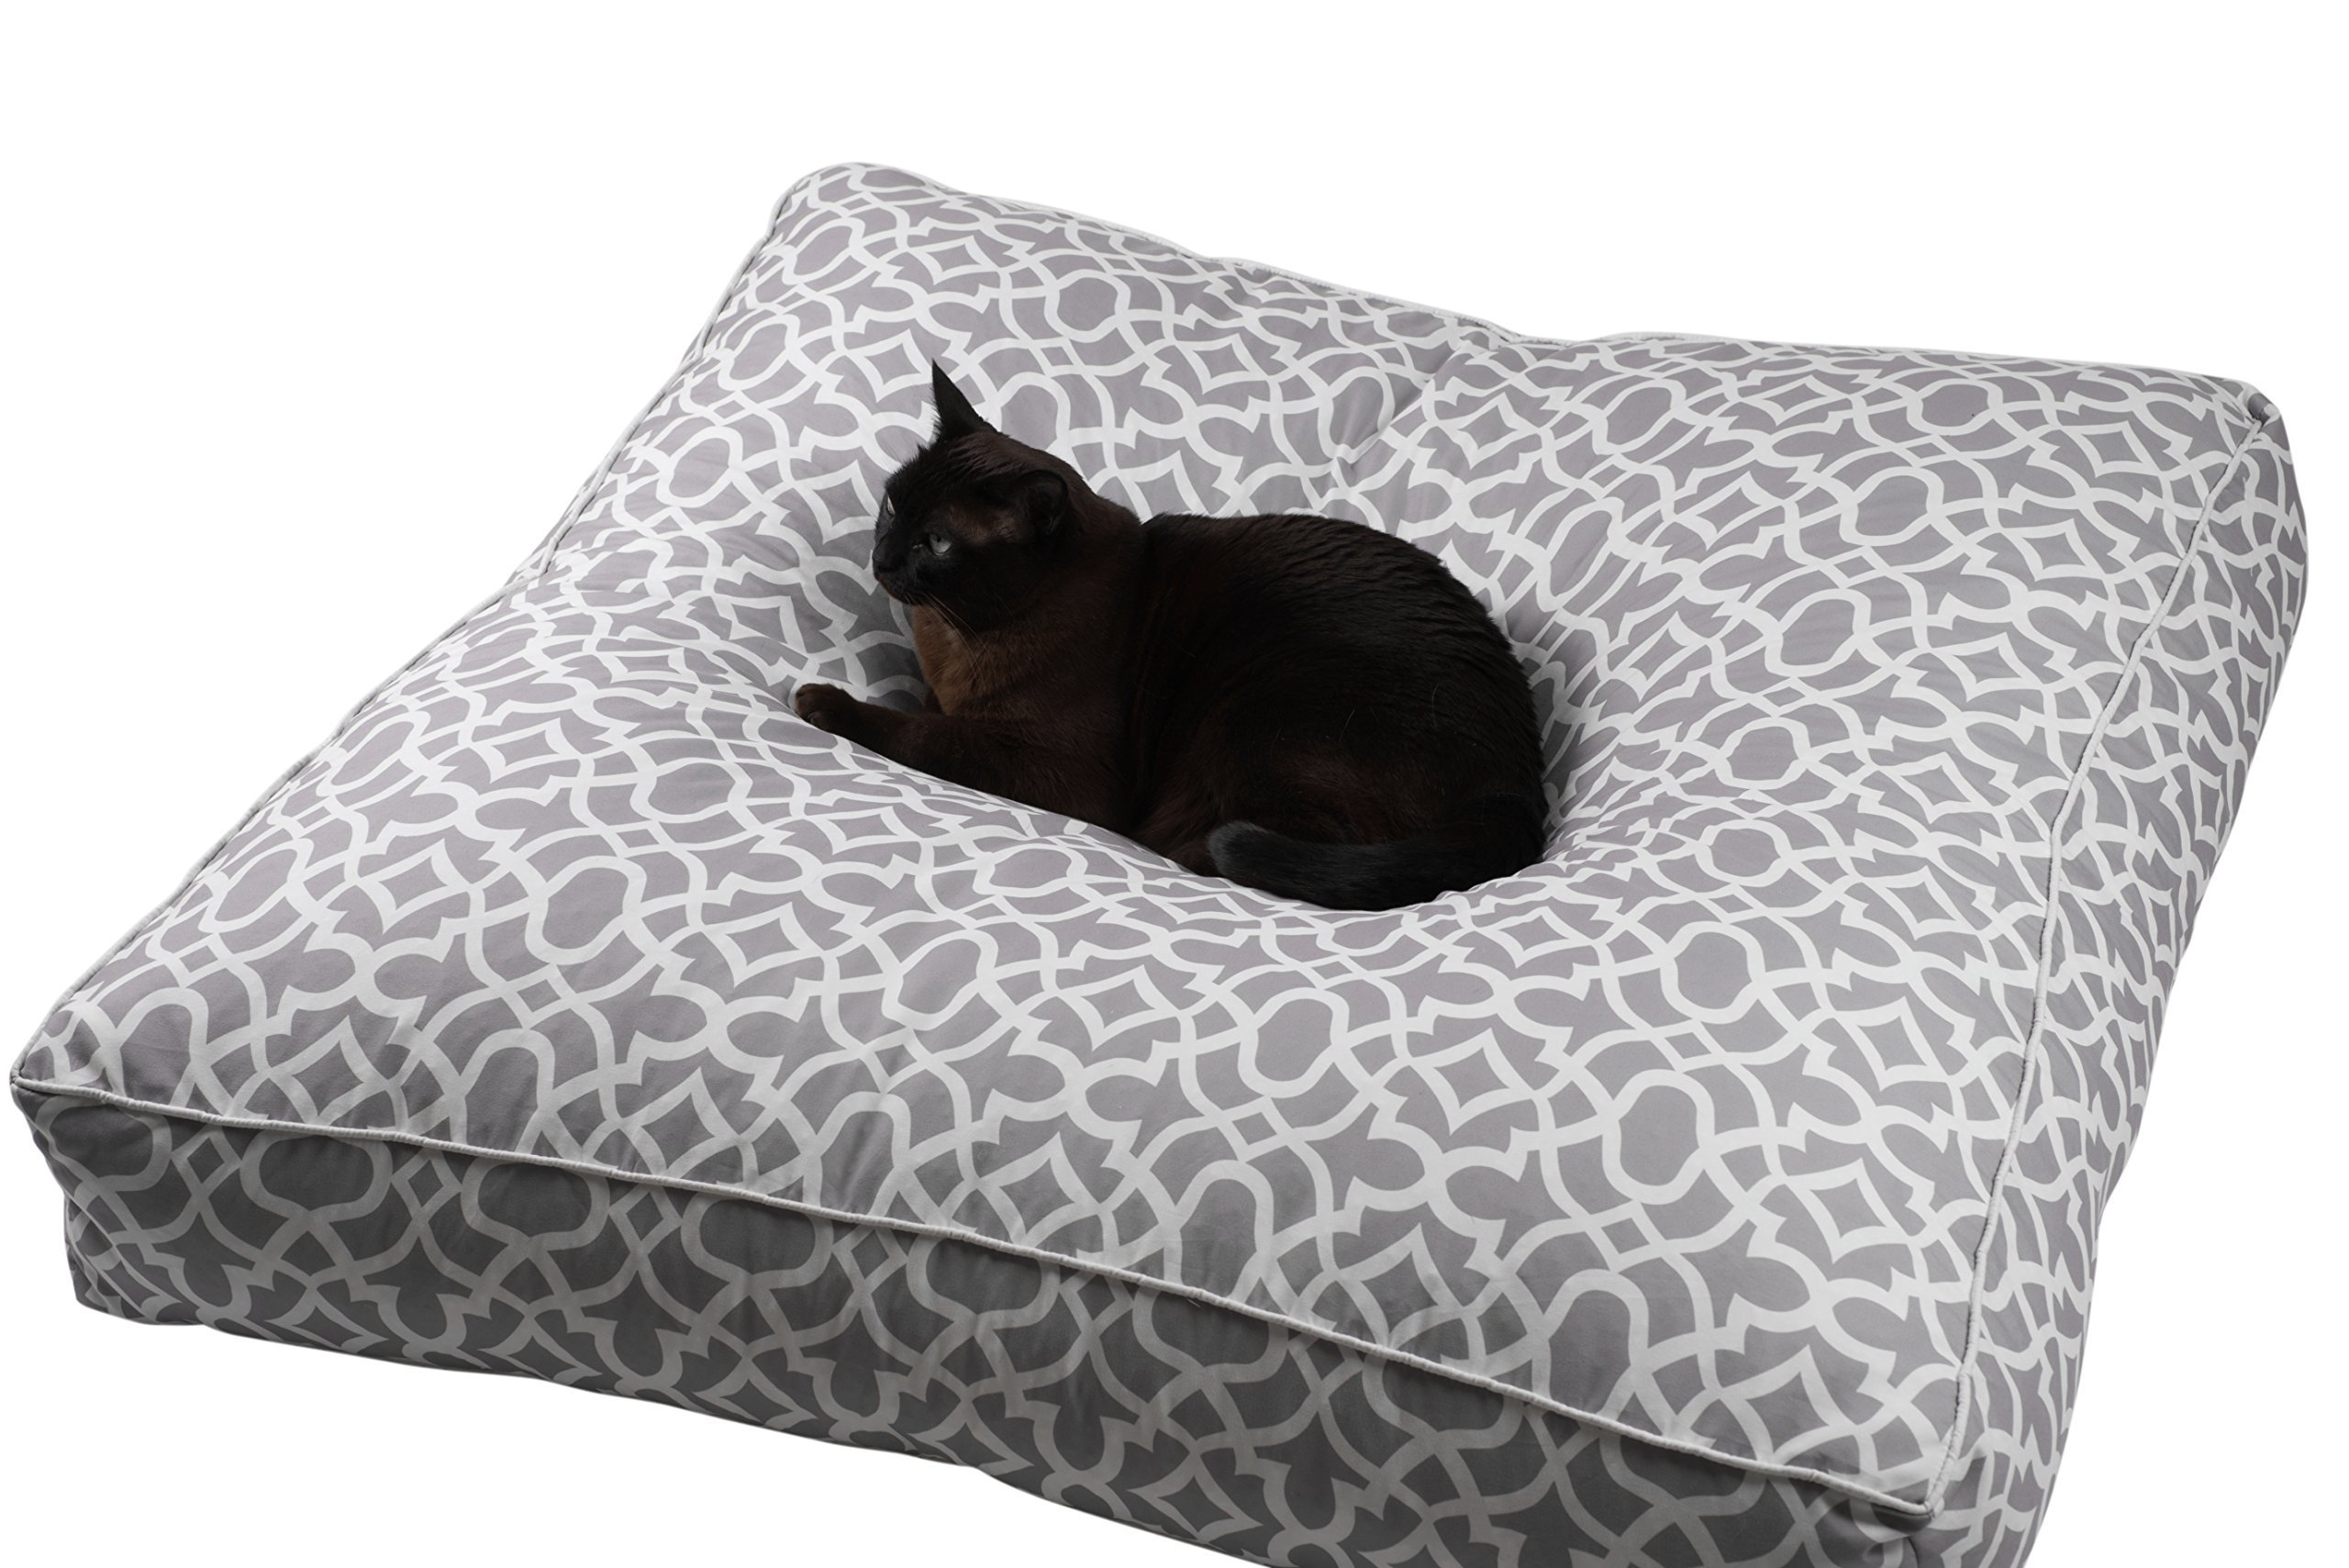 Large Floor Pillow Cover,Throw Cushion (insert not included), Oversized Waterproof Pool Seating Living Room Decor, Dog Cat Bed Ottoman Yoga Meditation Indoor Outdoor Pouf Beige and White 88x88x15cm